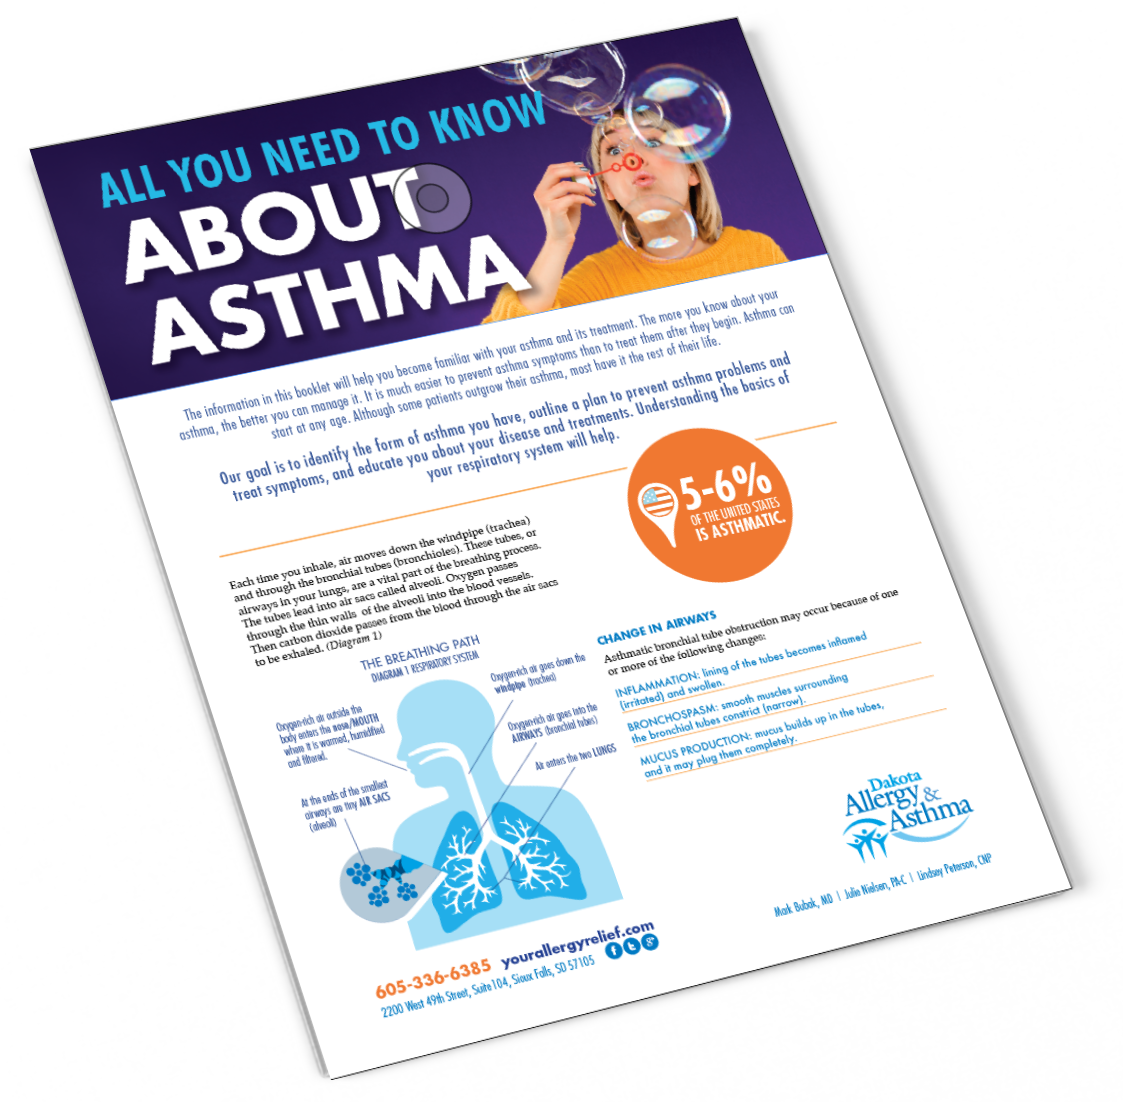 All-You-Need-To-Know-About-Asthma-COVER.png